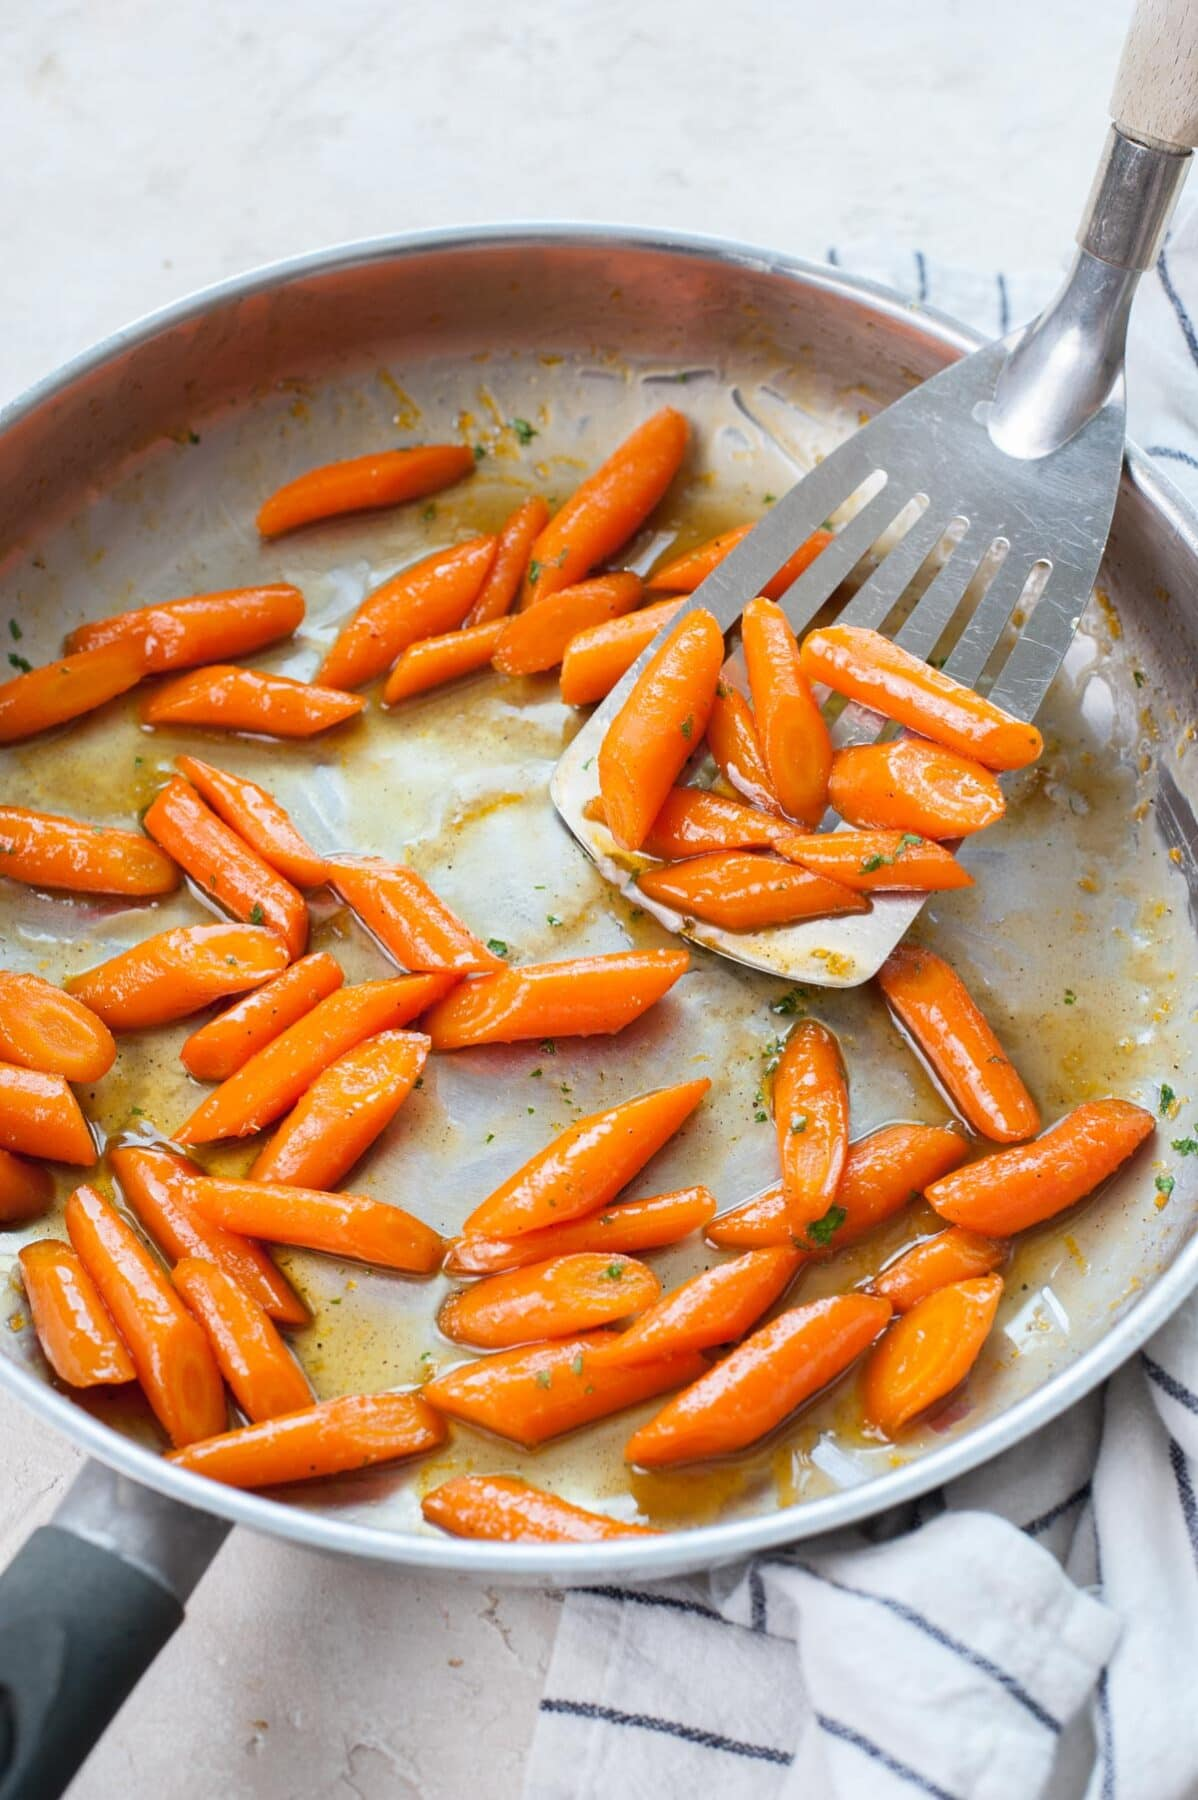 Honey glazed carrots are being scooped with a spatula from a frying pan.